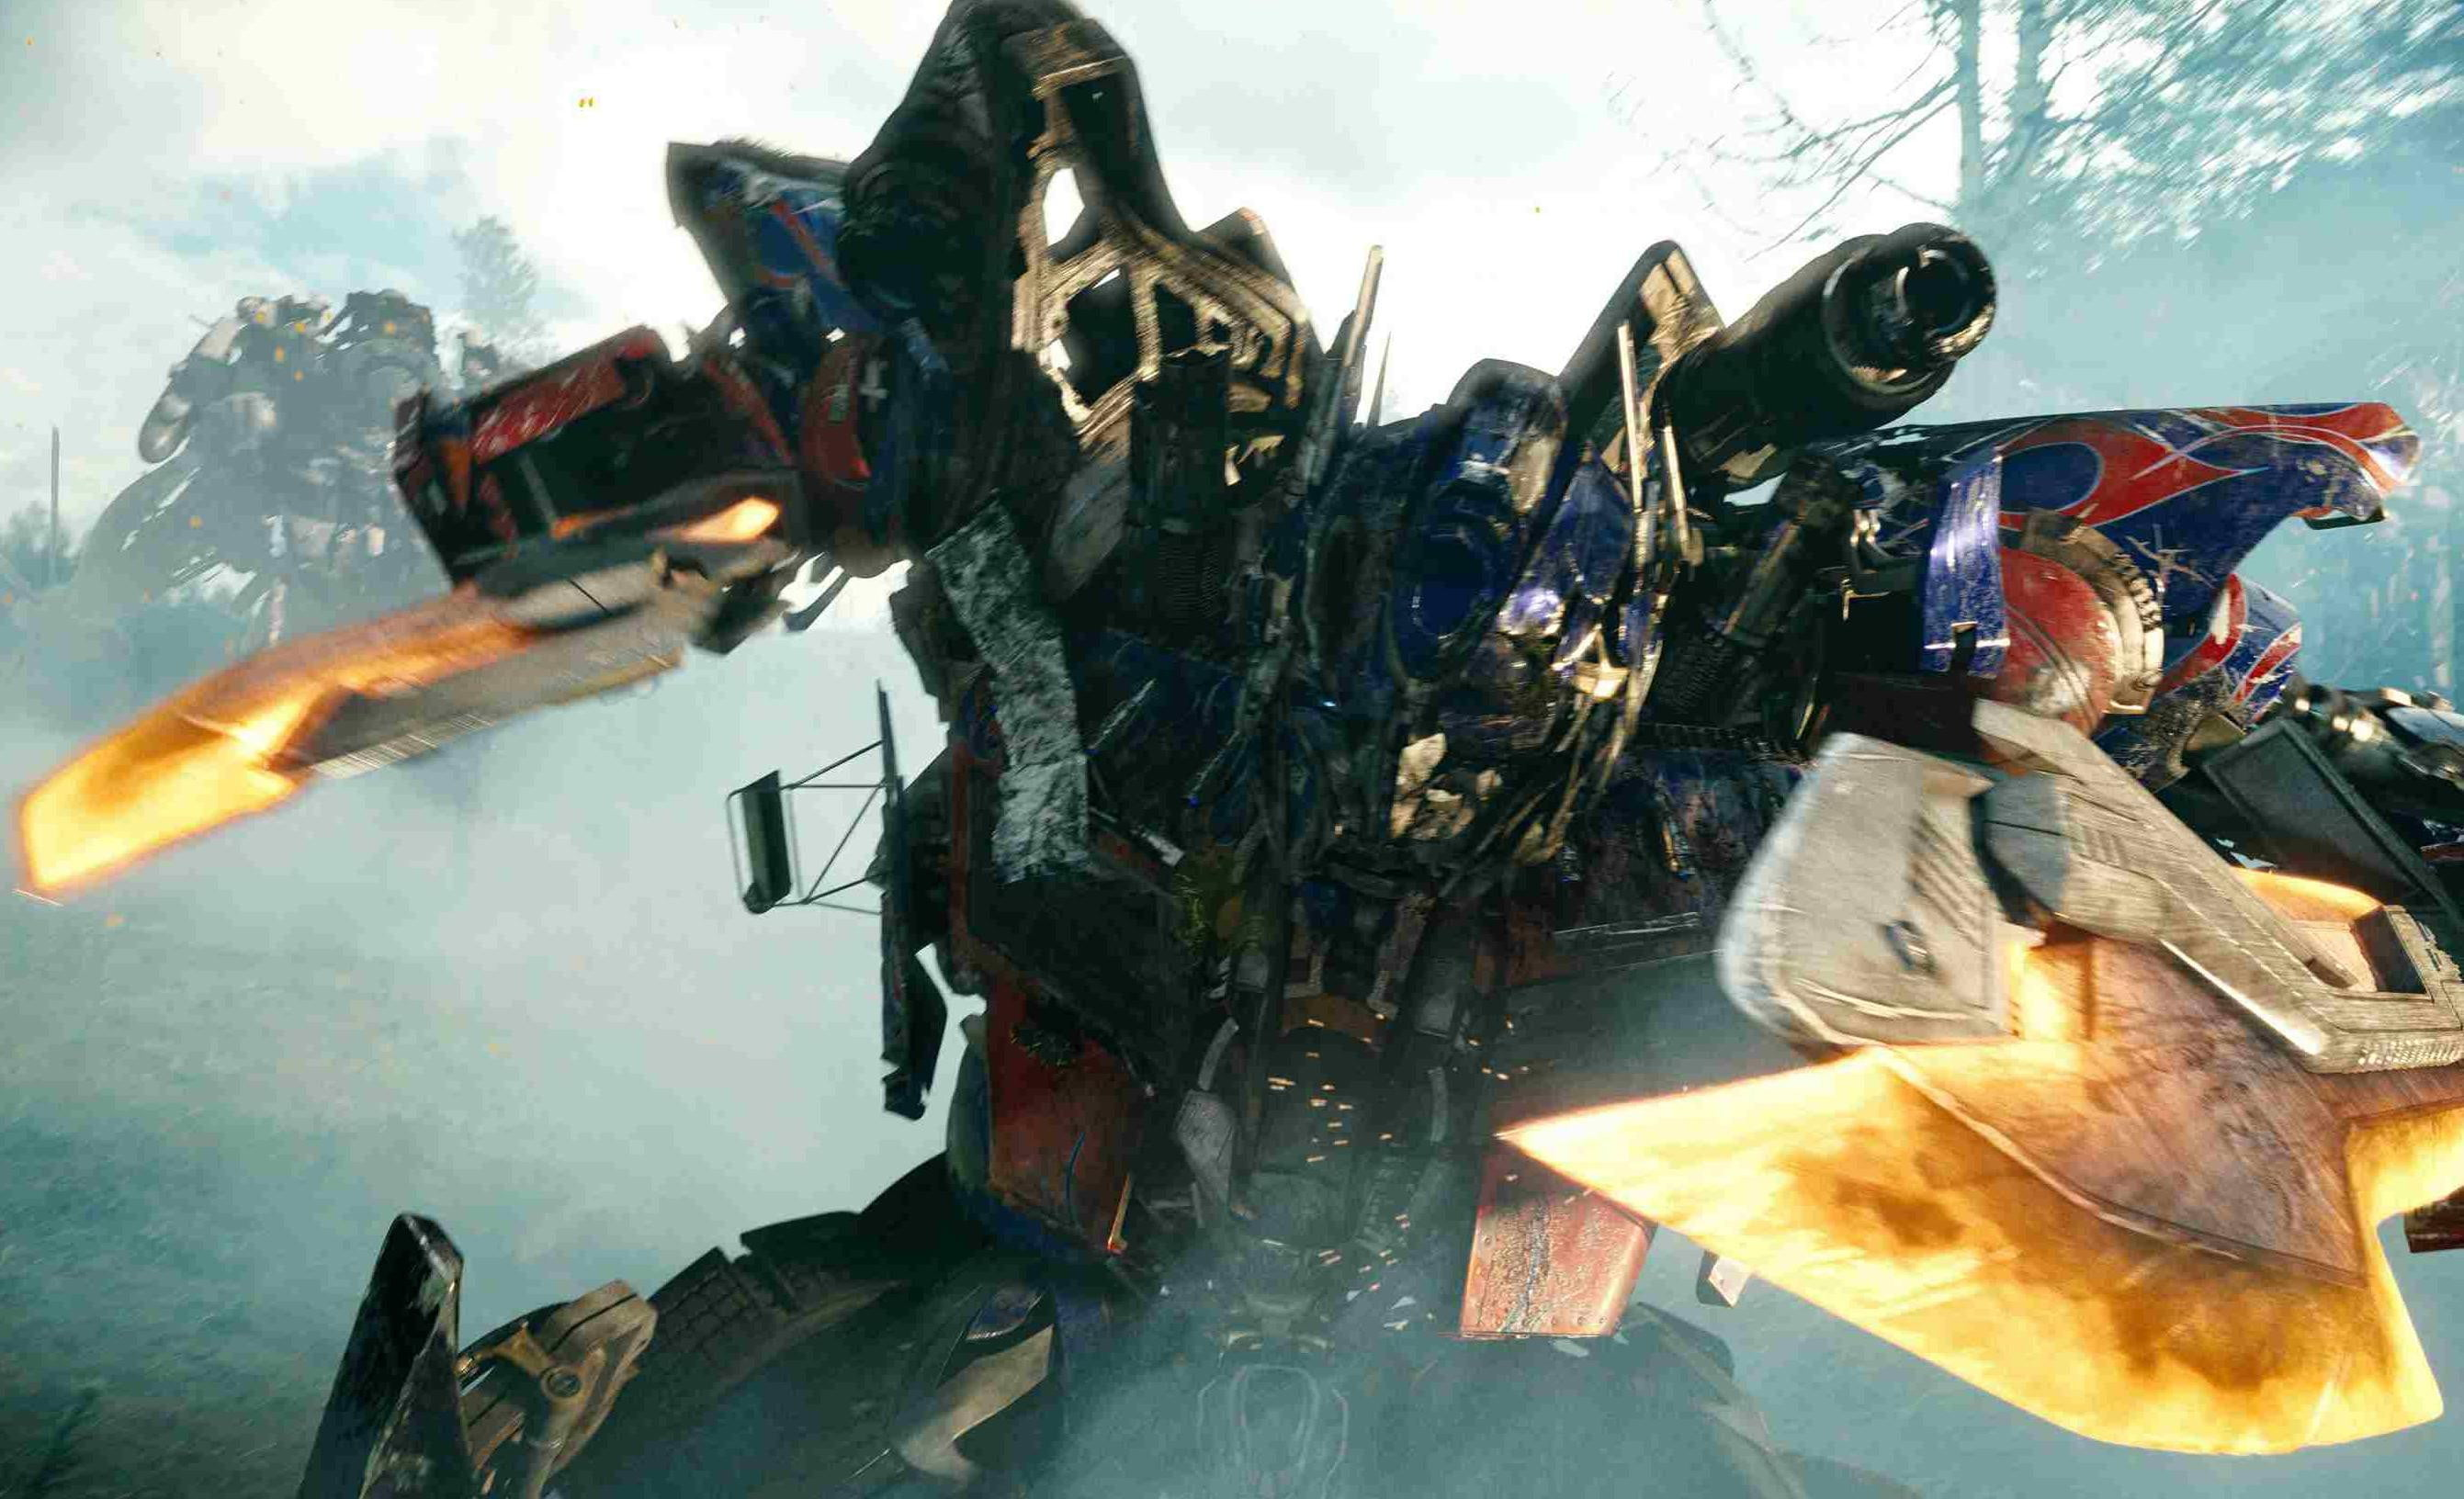 reinvented' transformers 4 will feature new cast of robots | digital